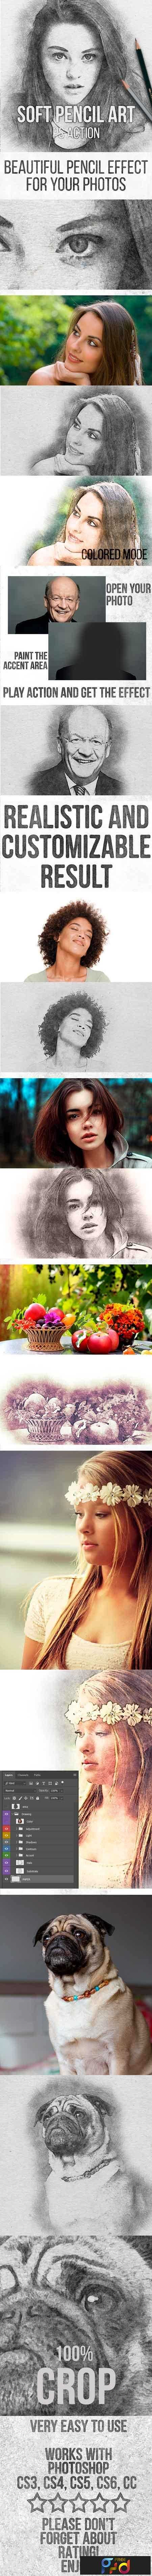 Soft Pencil Art Action 22581121 1